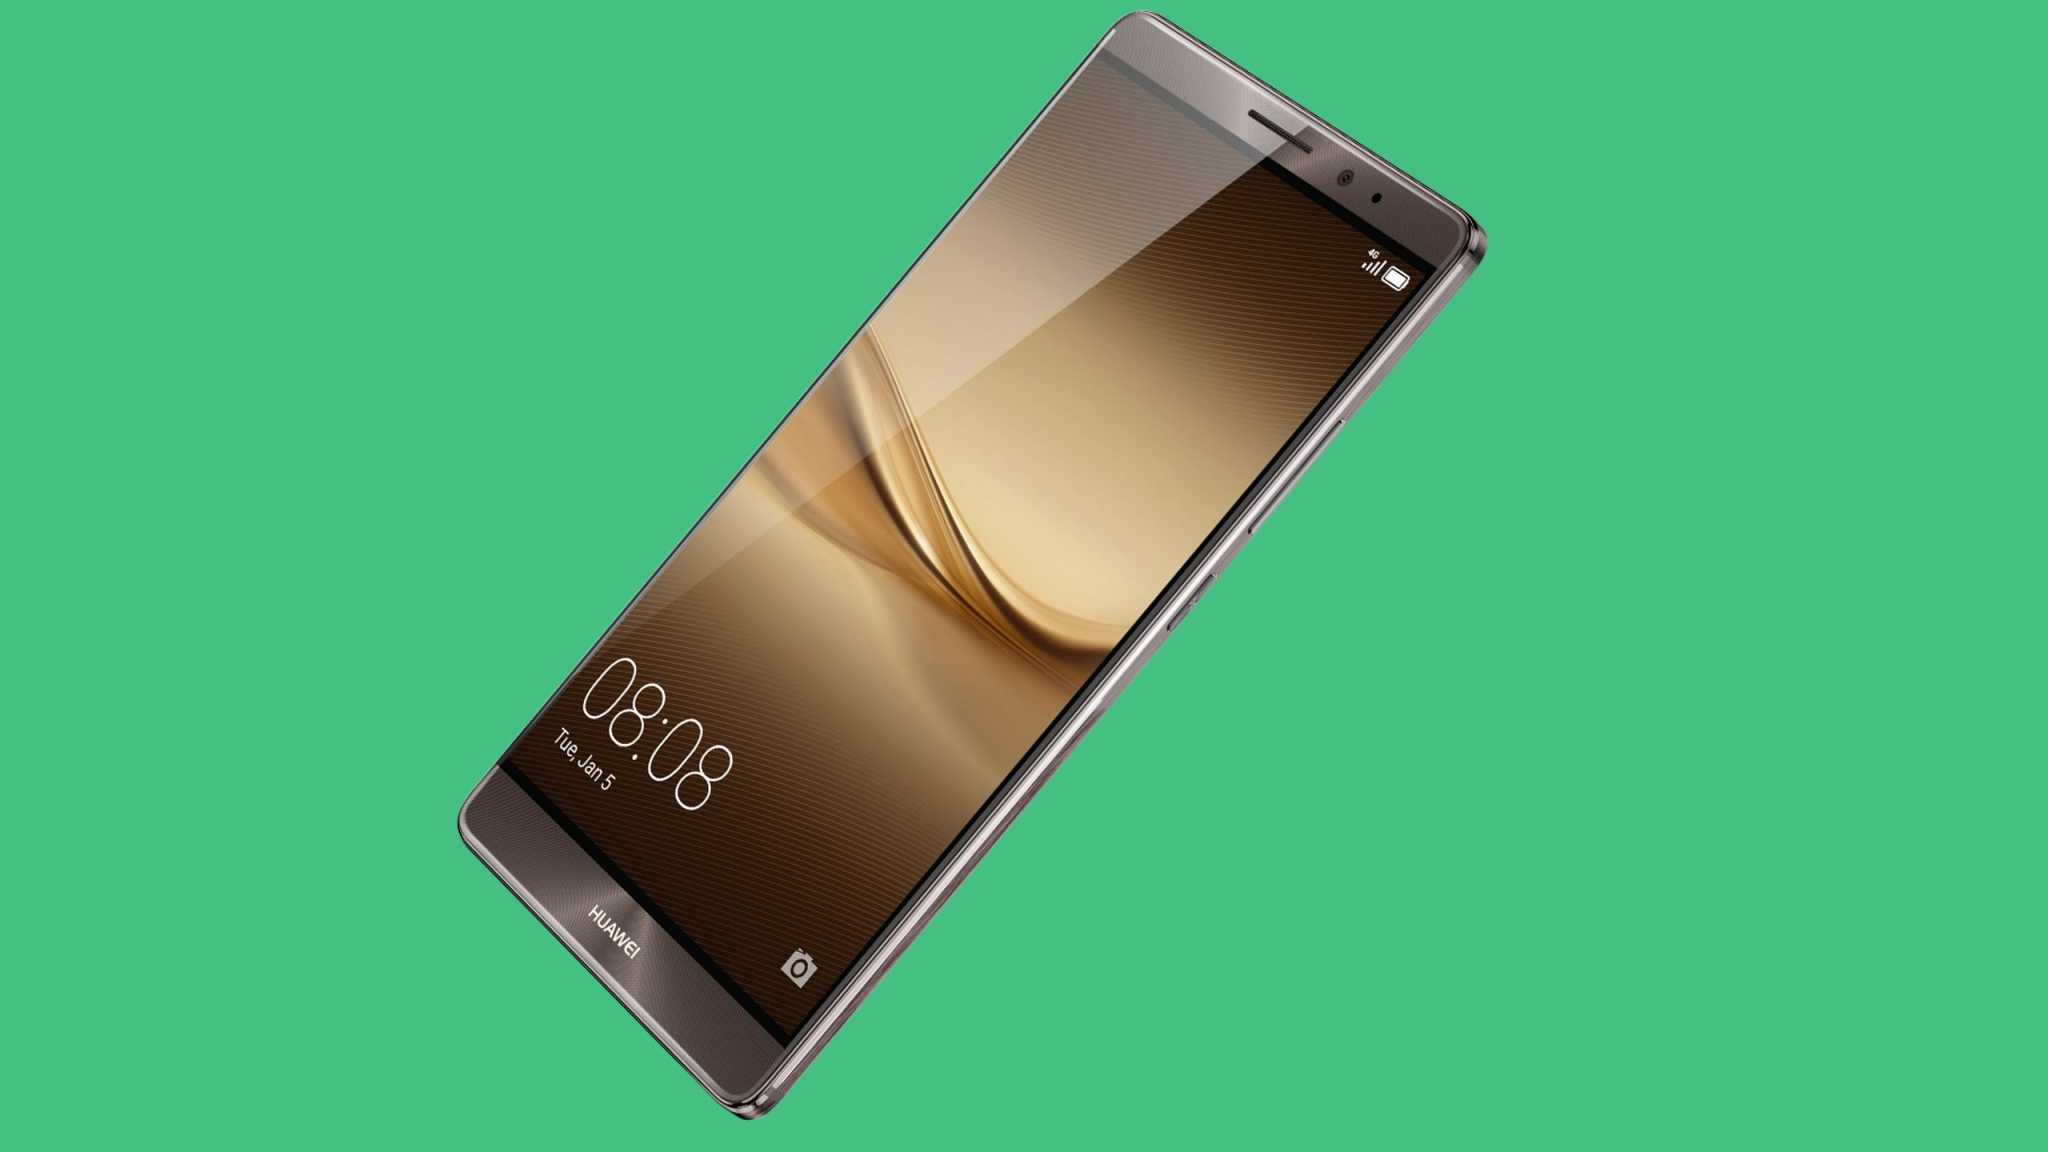 Install TWRP Recovery on the Huawei Mate 9 Smartphone - Android News